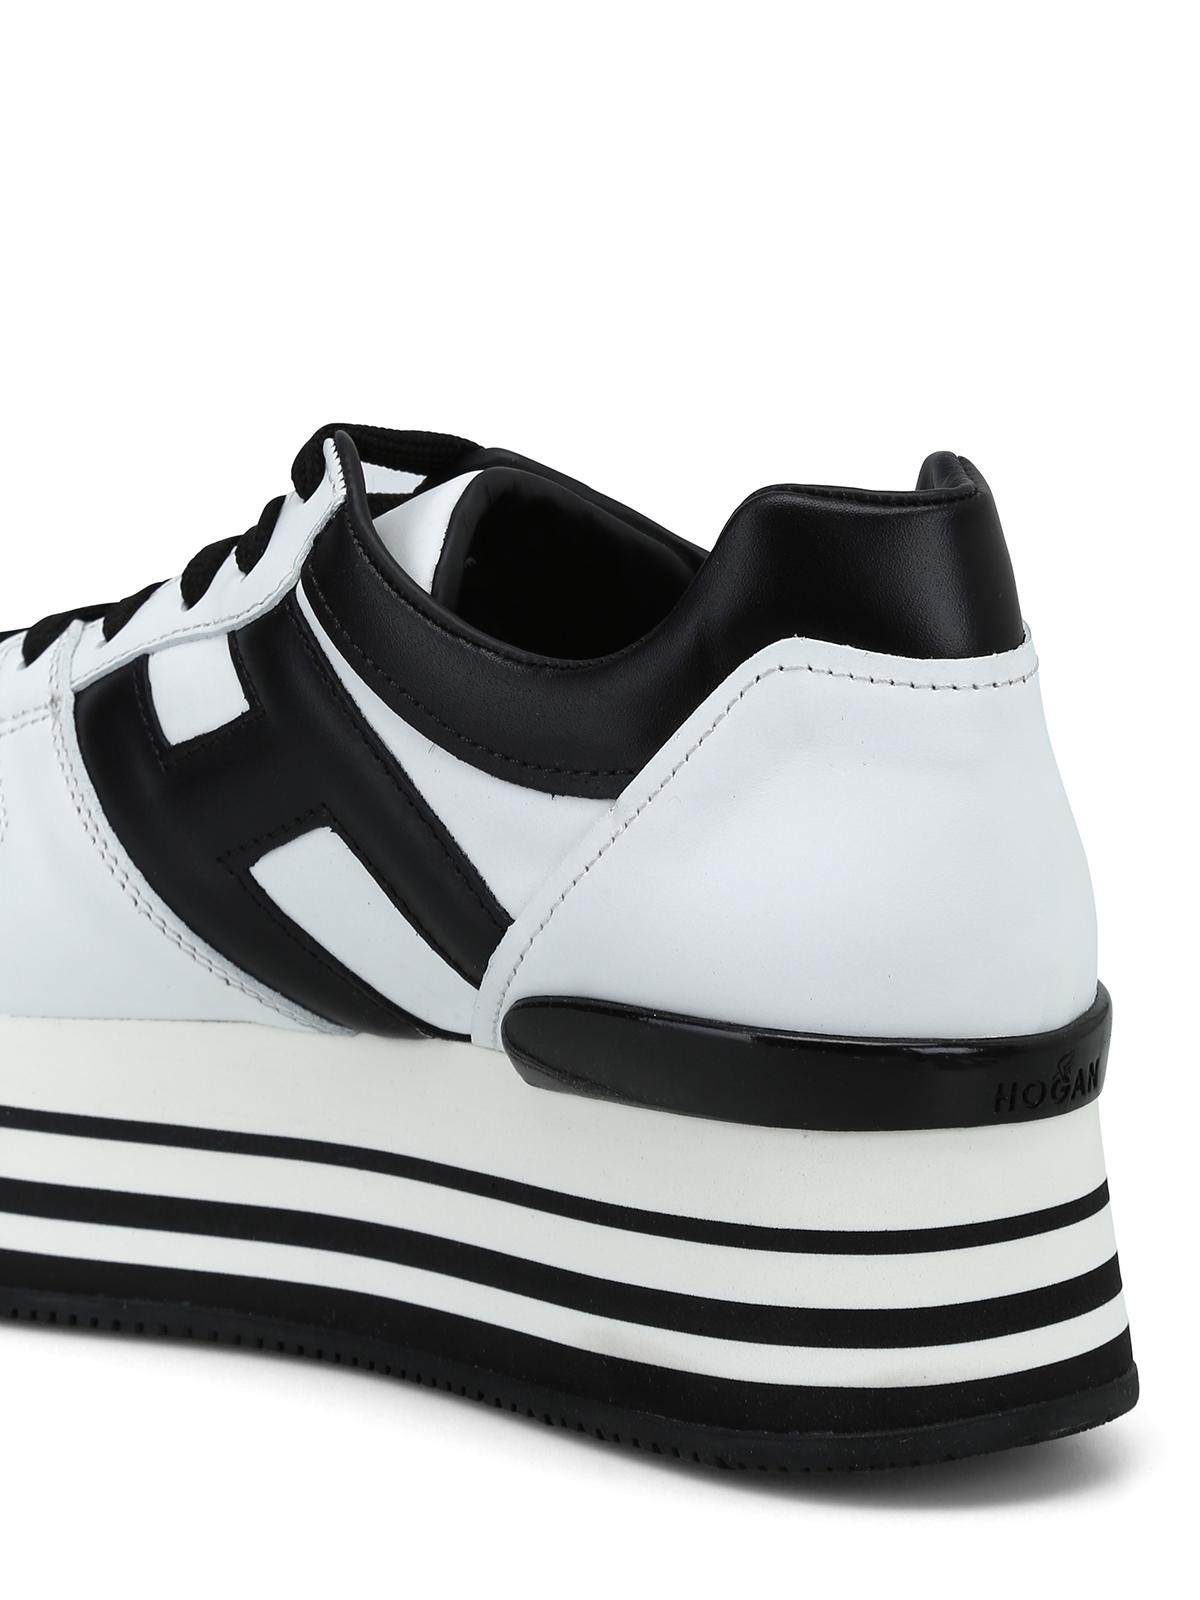 Hogan - H283 white and black leather sneakers - trainers ...